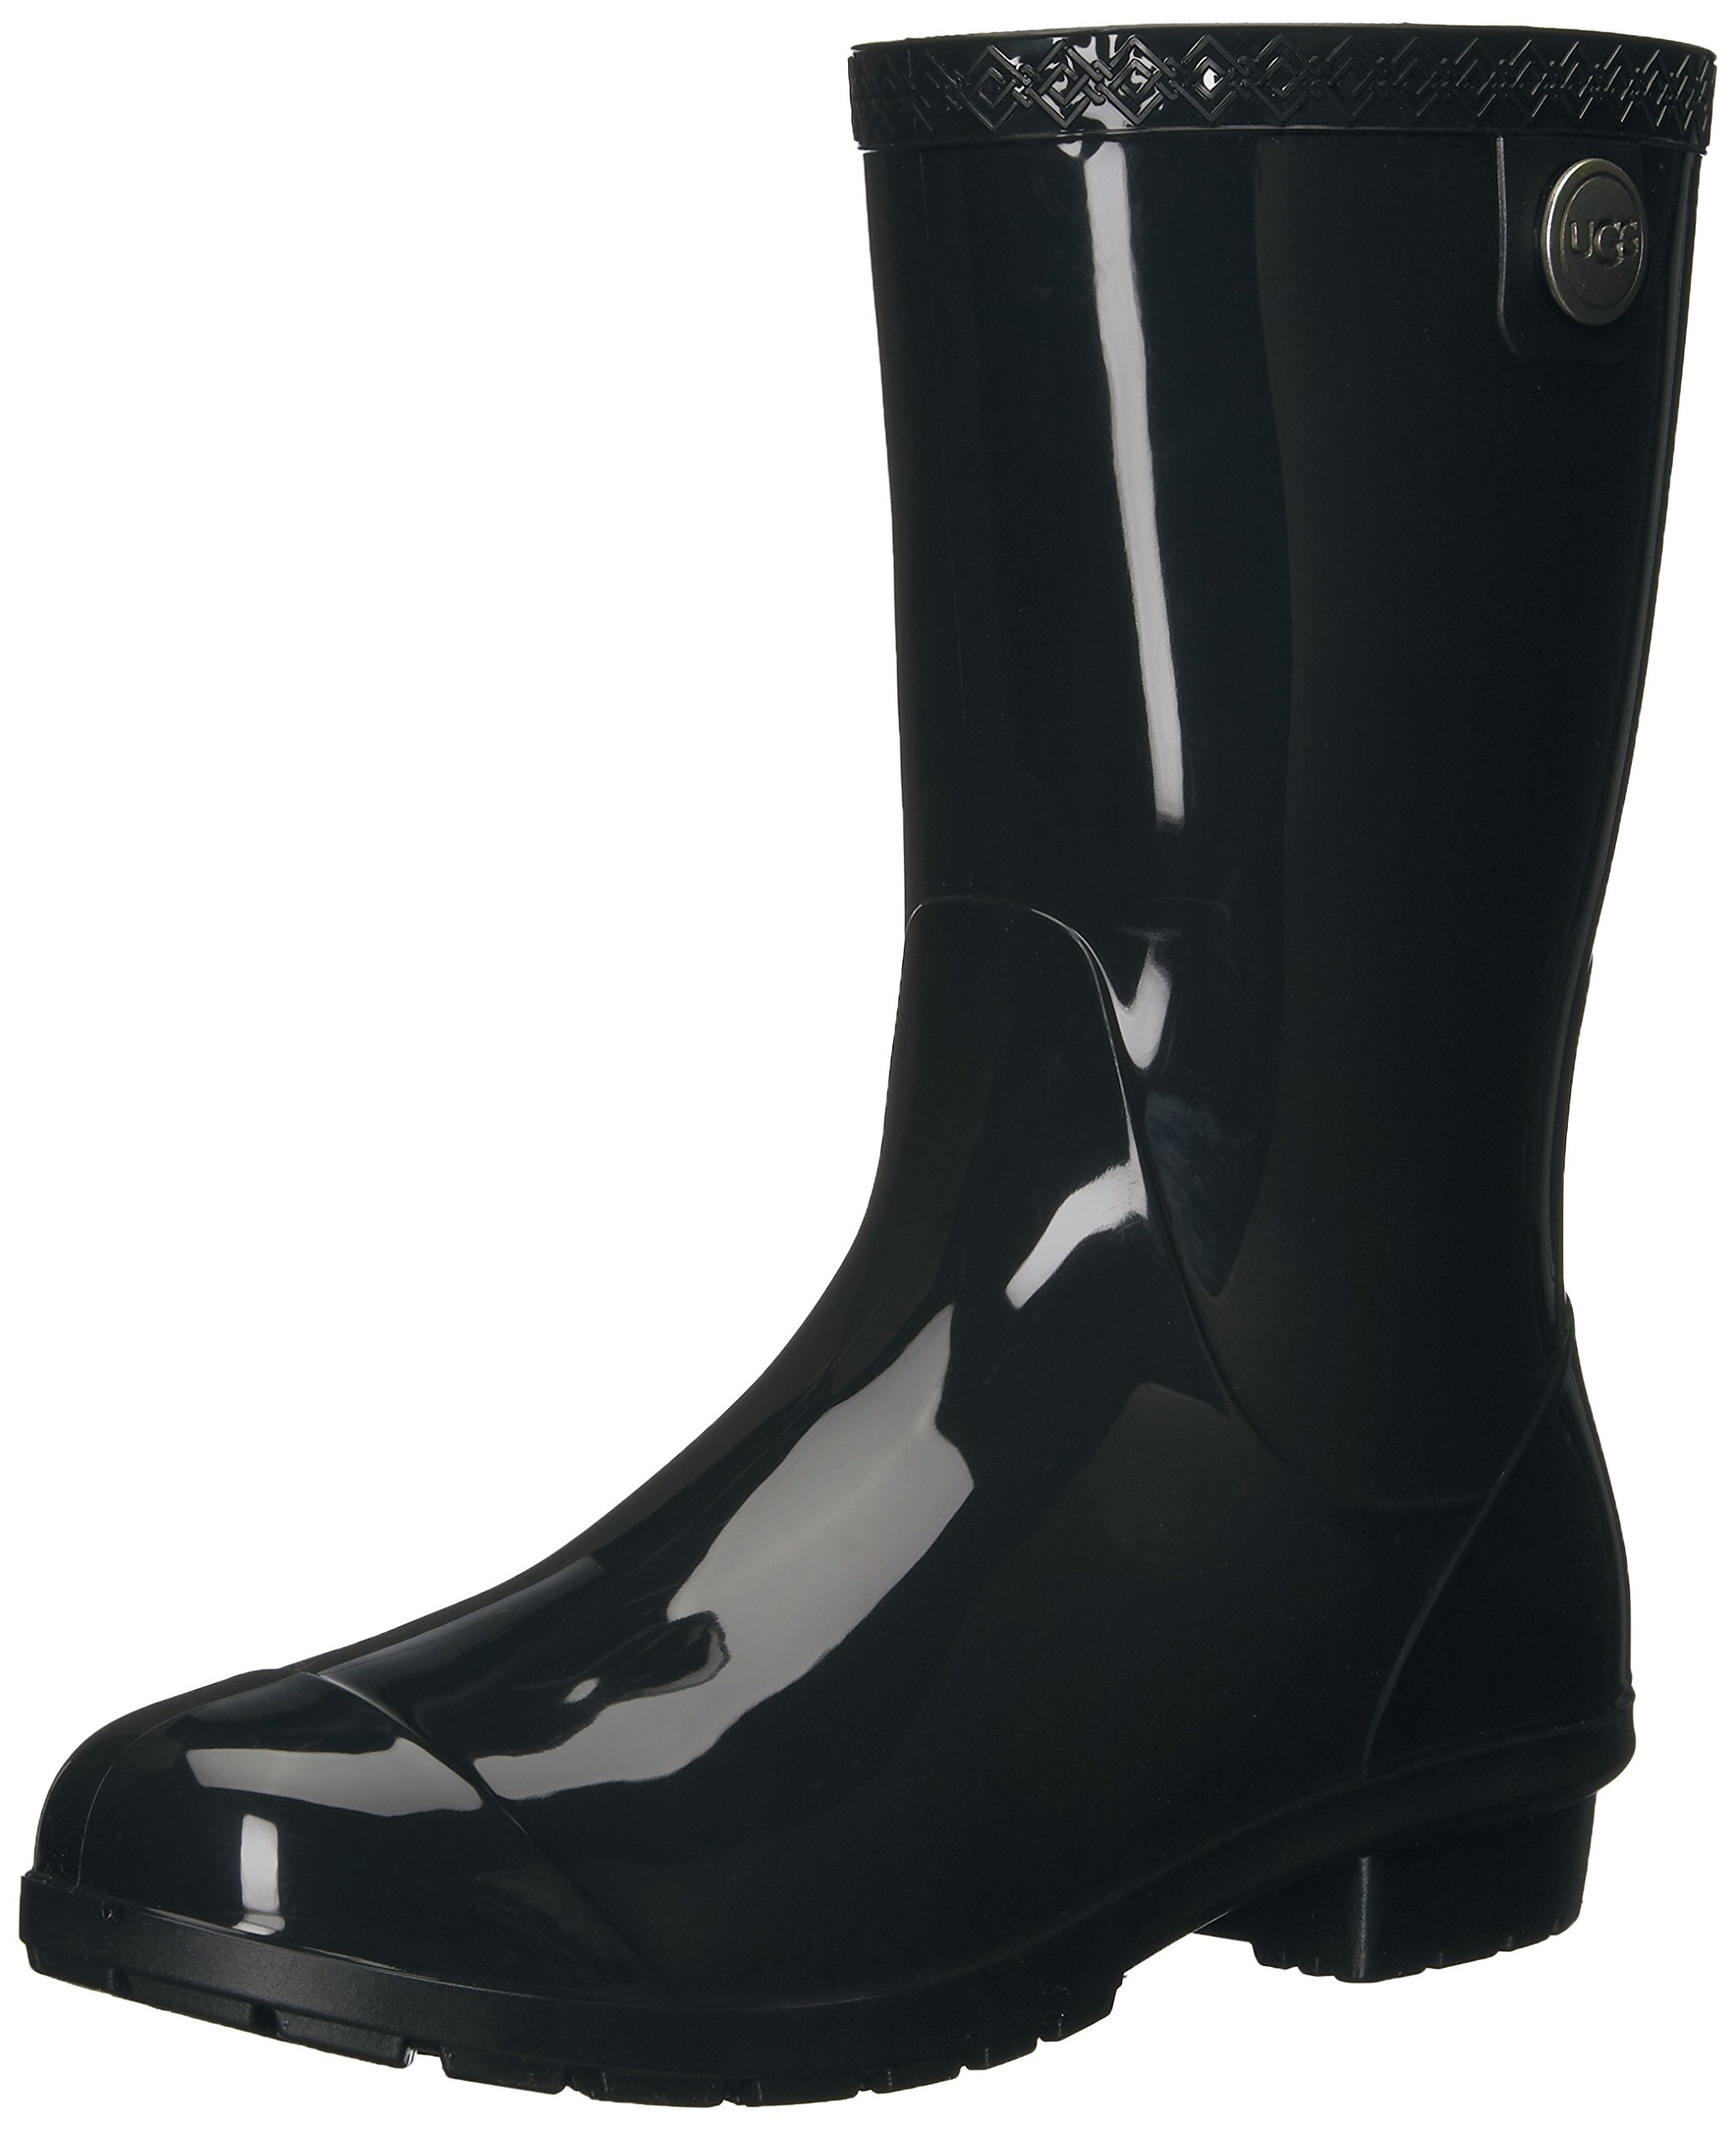 UGG Women's Sienna Rain Boot, Black, 8 B US by UGG